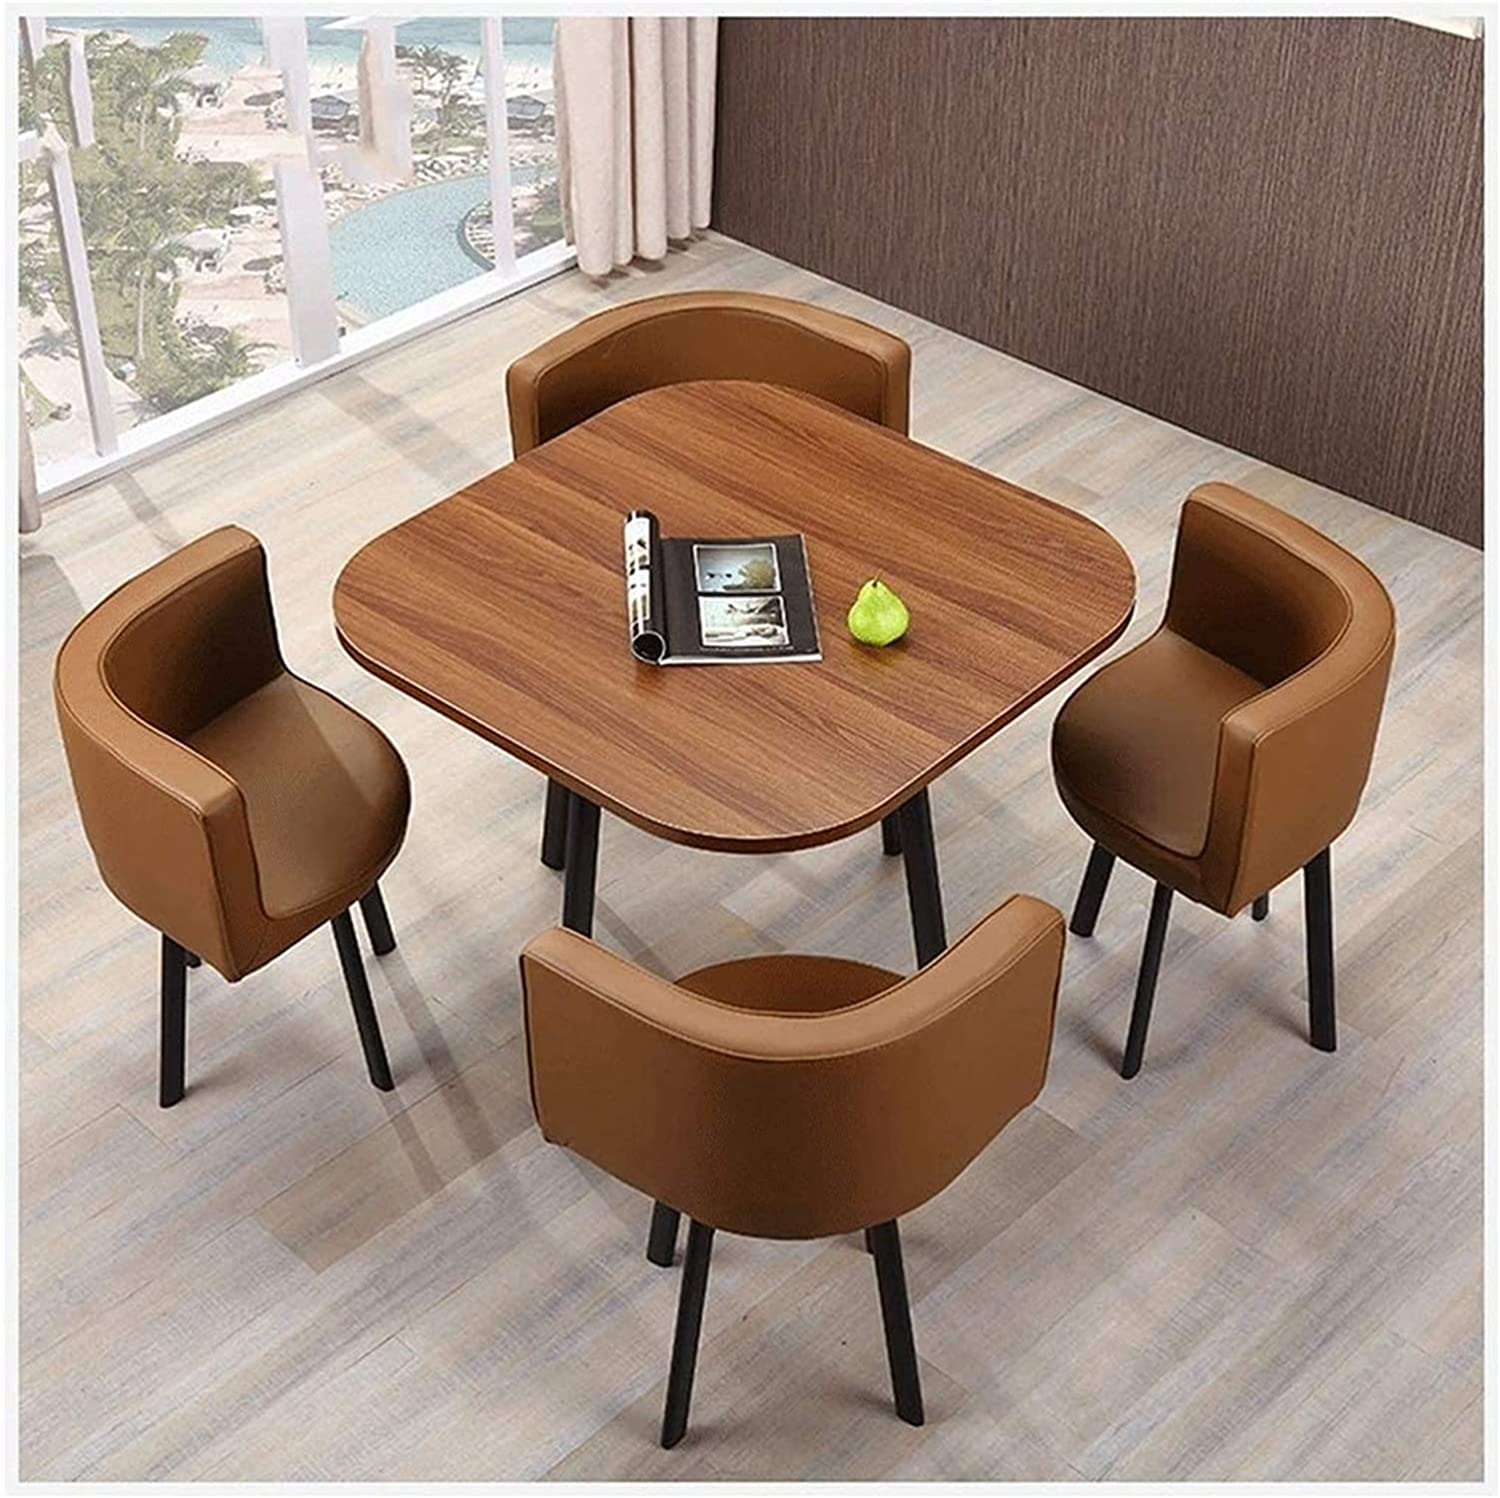 Indefinitely Dining Table Set - and Home for a Cheap bargain Office Chairs